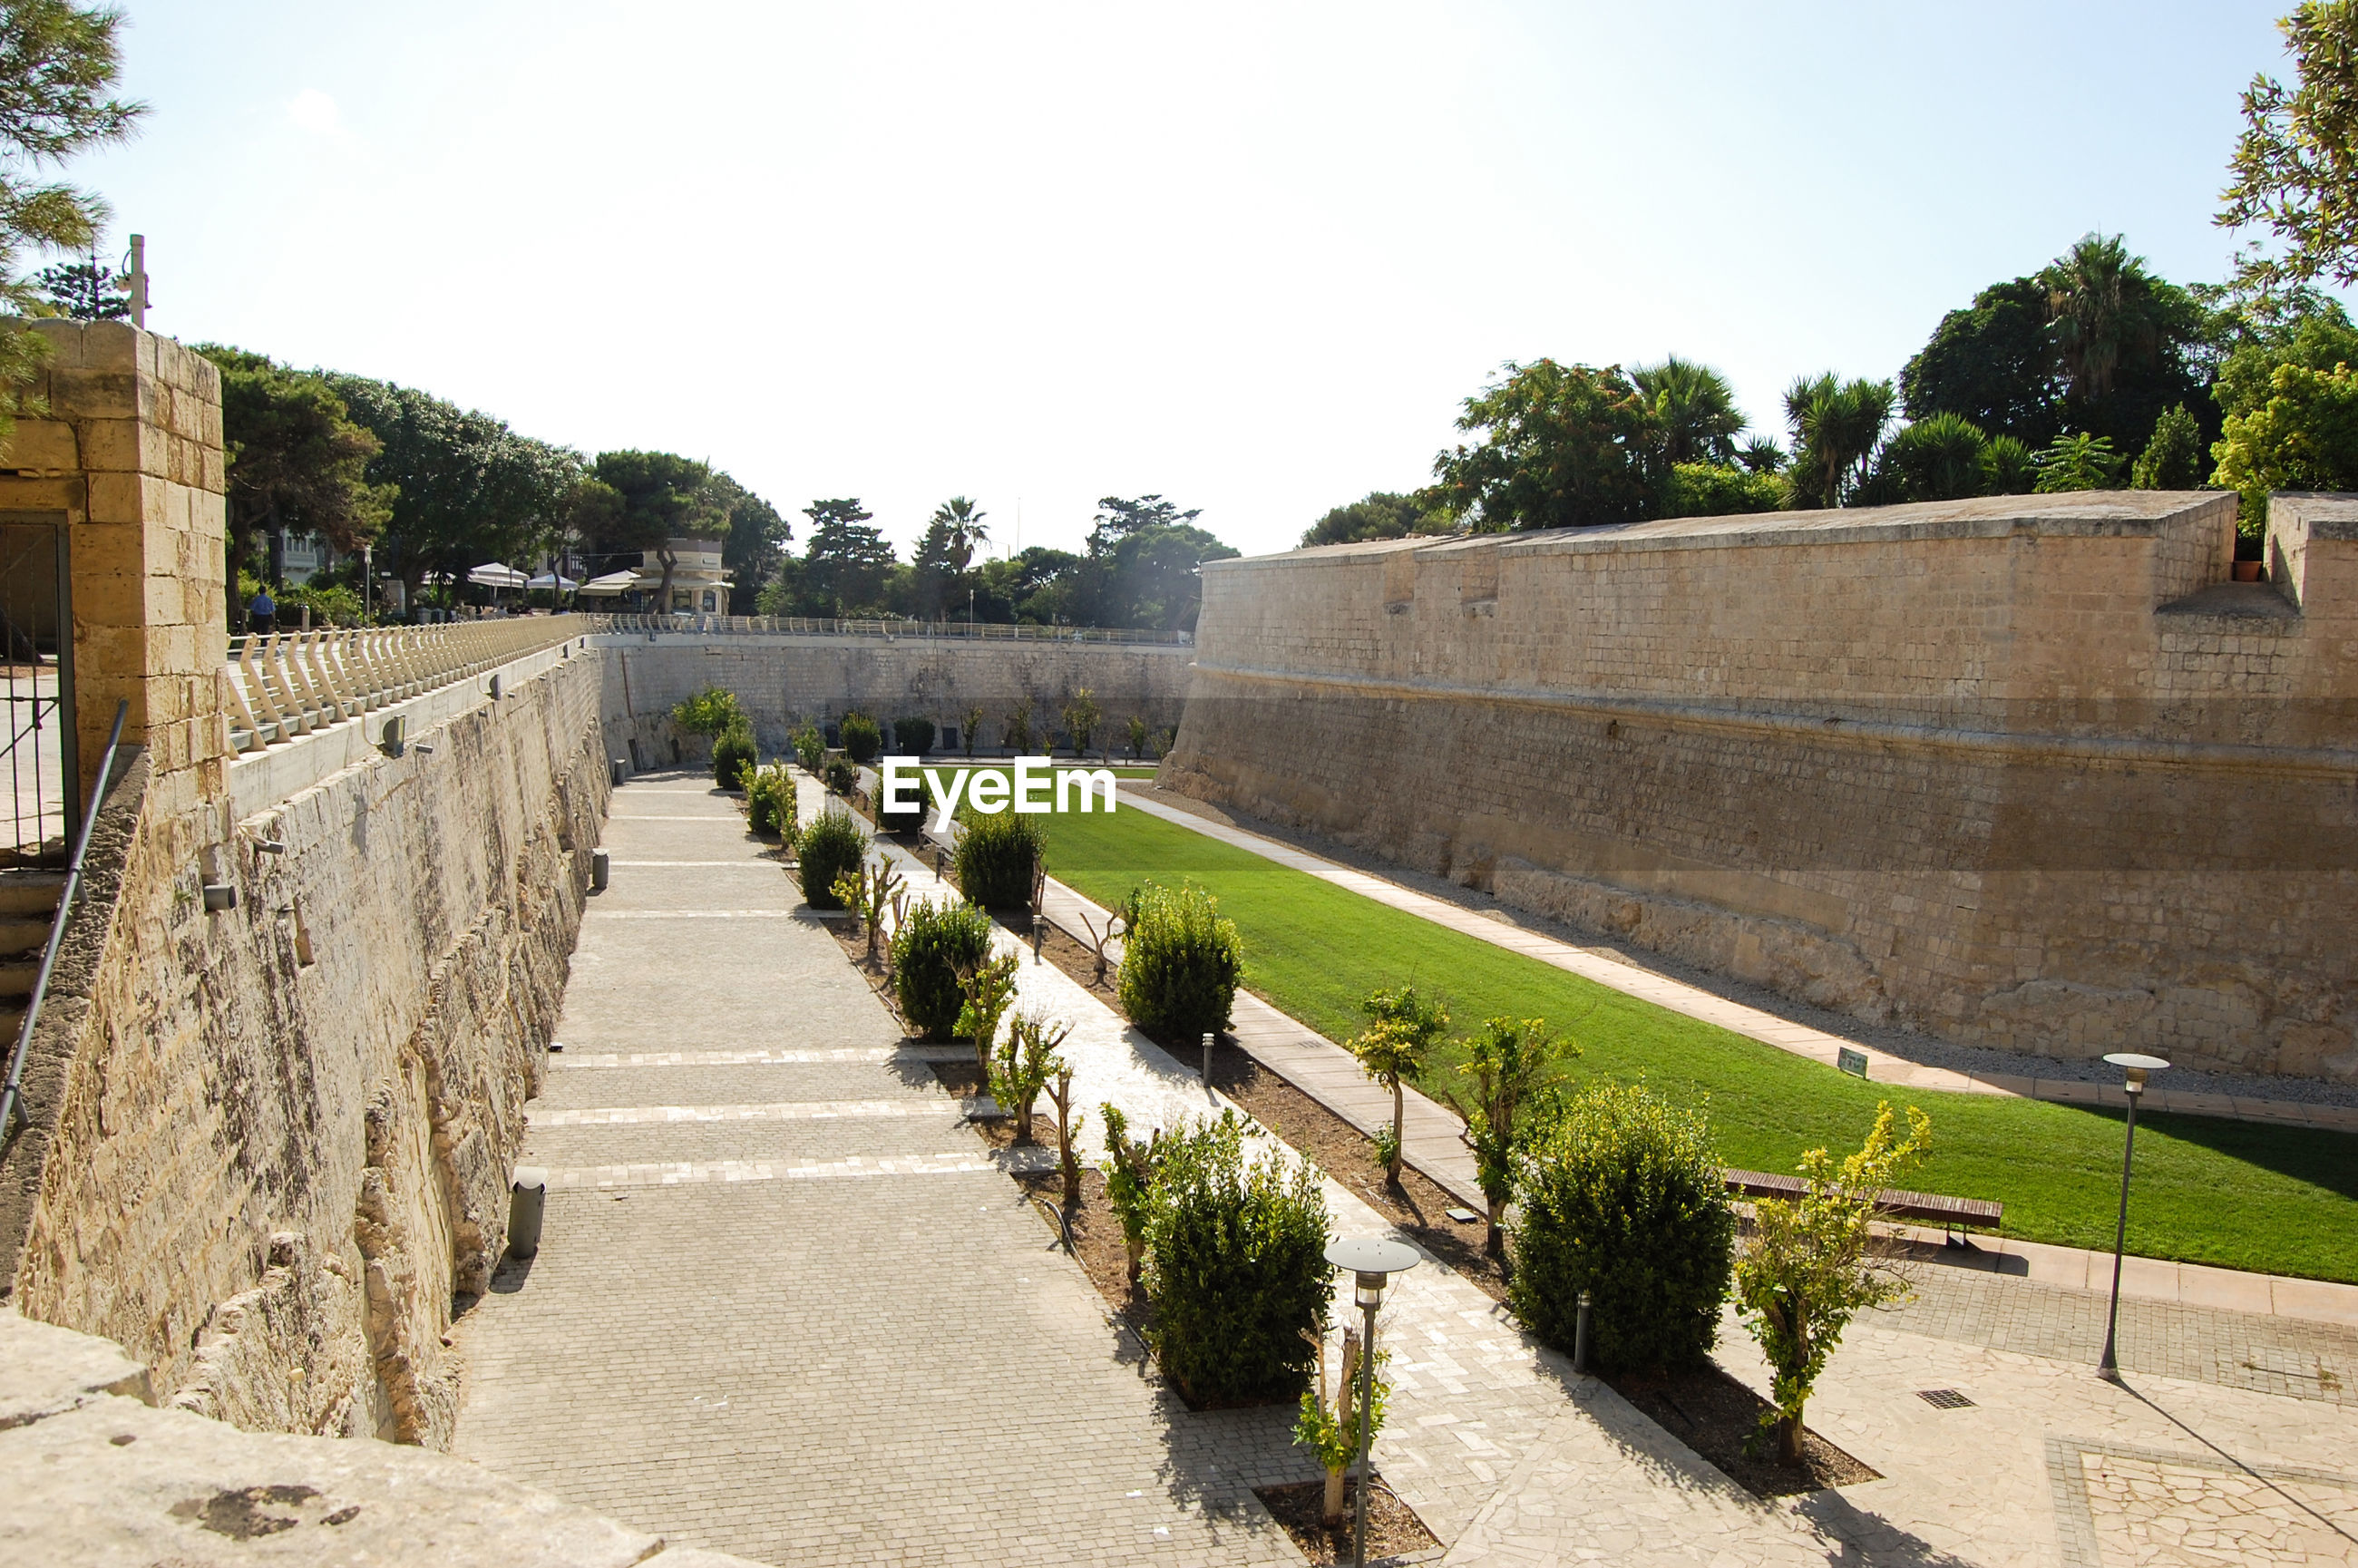 VIEW OF FORT AGAINST WALL